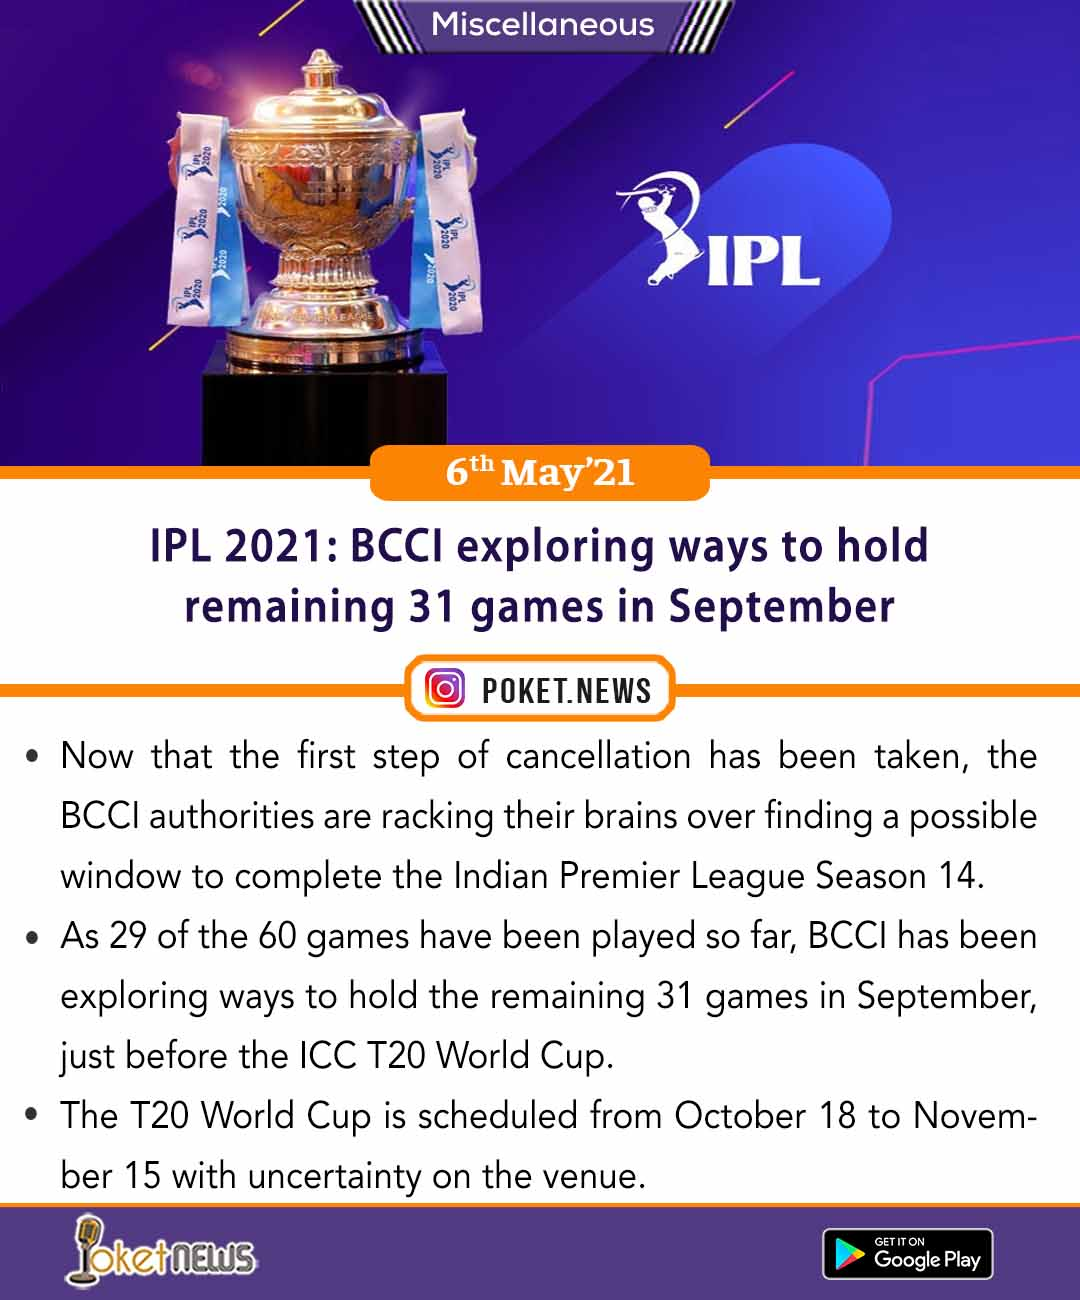 IPL 2021: BCCI exploring ways to hold remaining 31 games in September